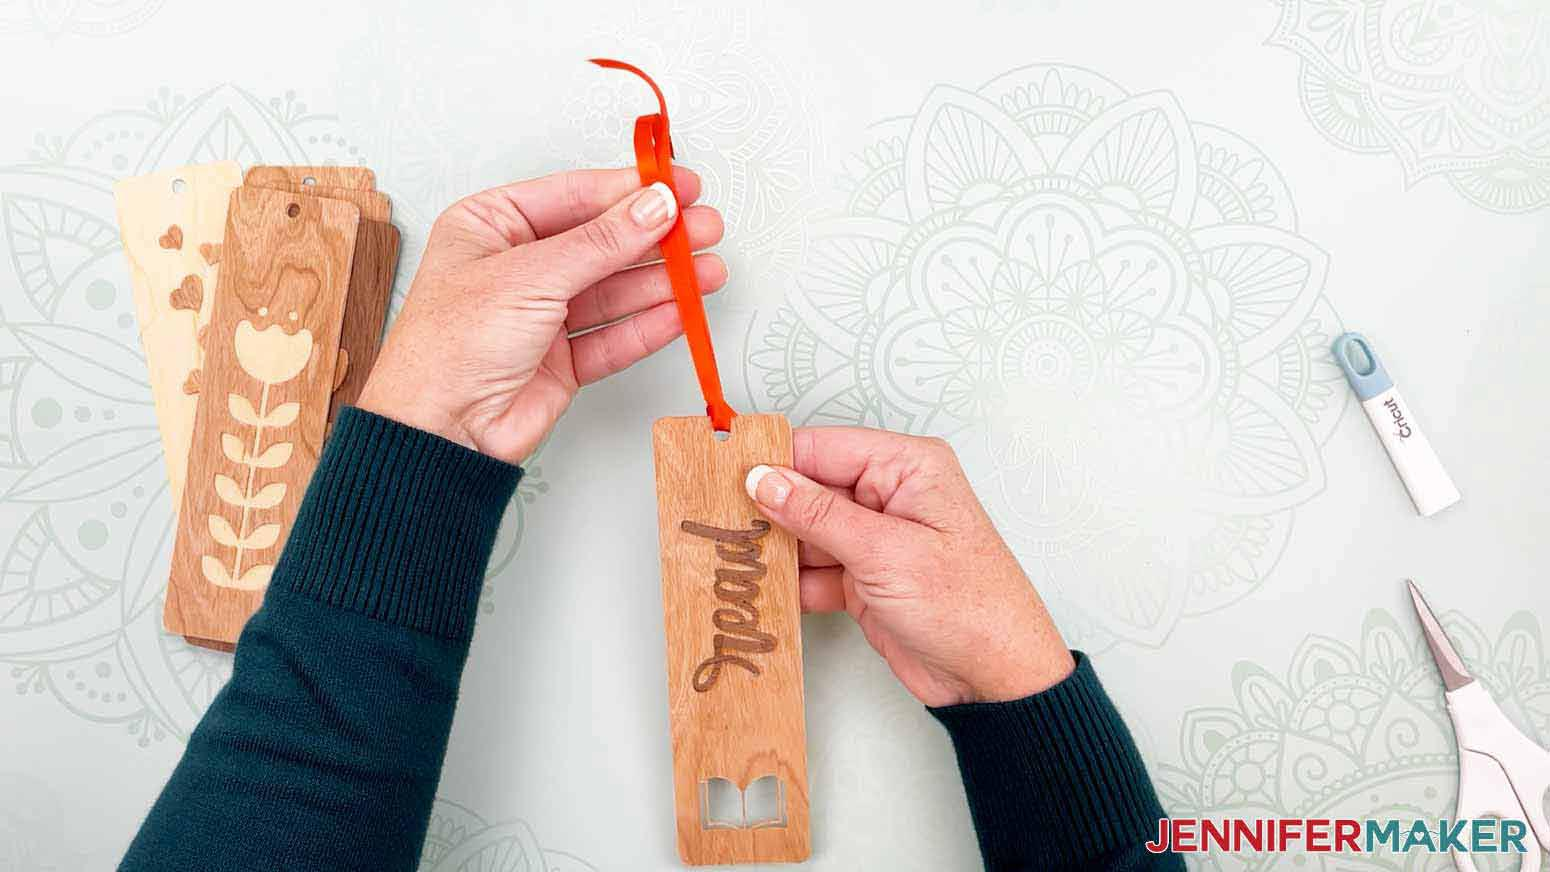 This is what the ribbon looks like on my read bookmark for my wooden bookmarks project